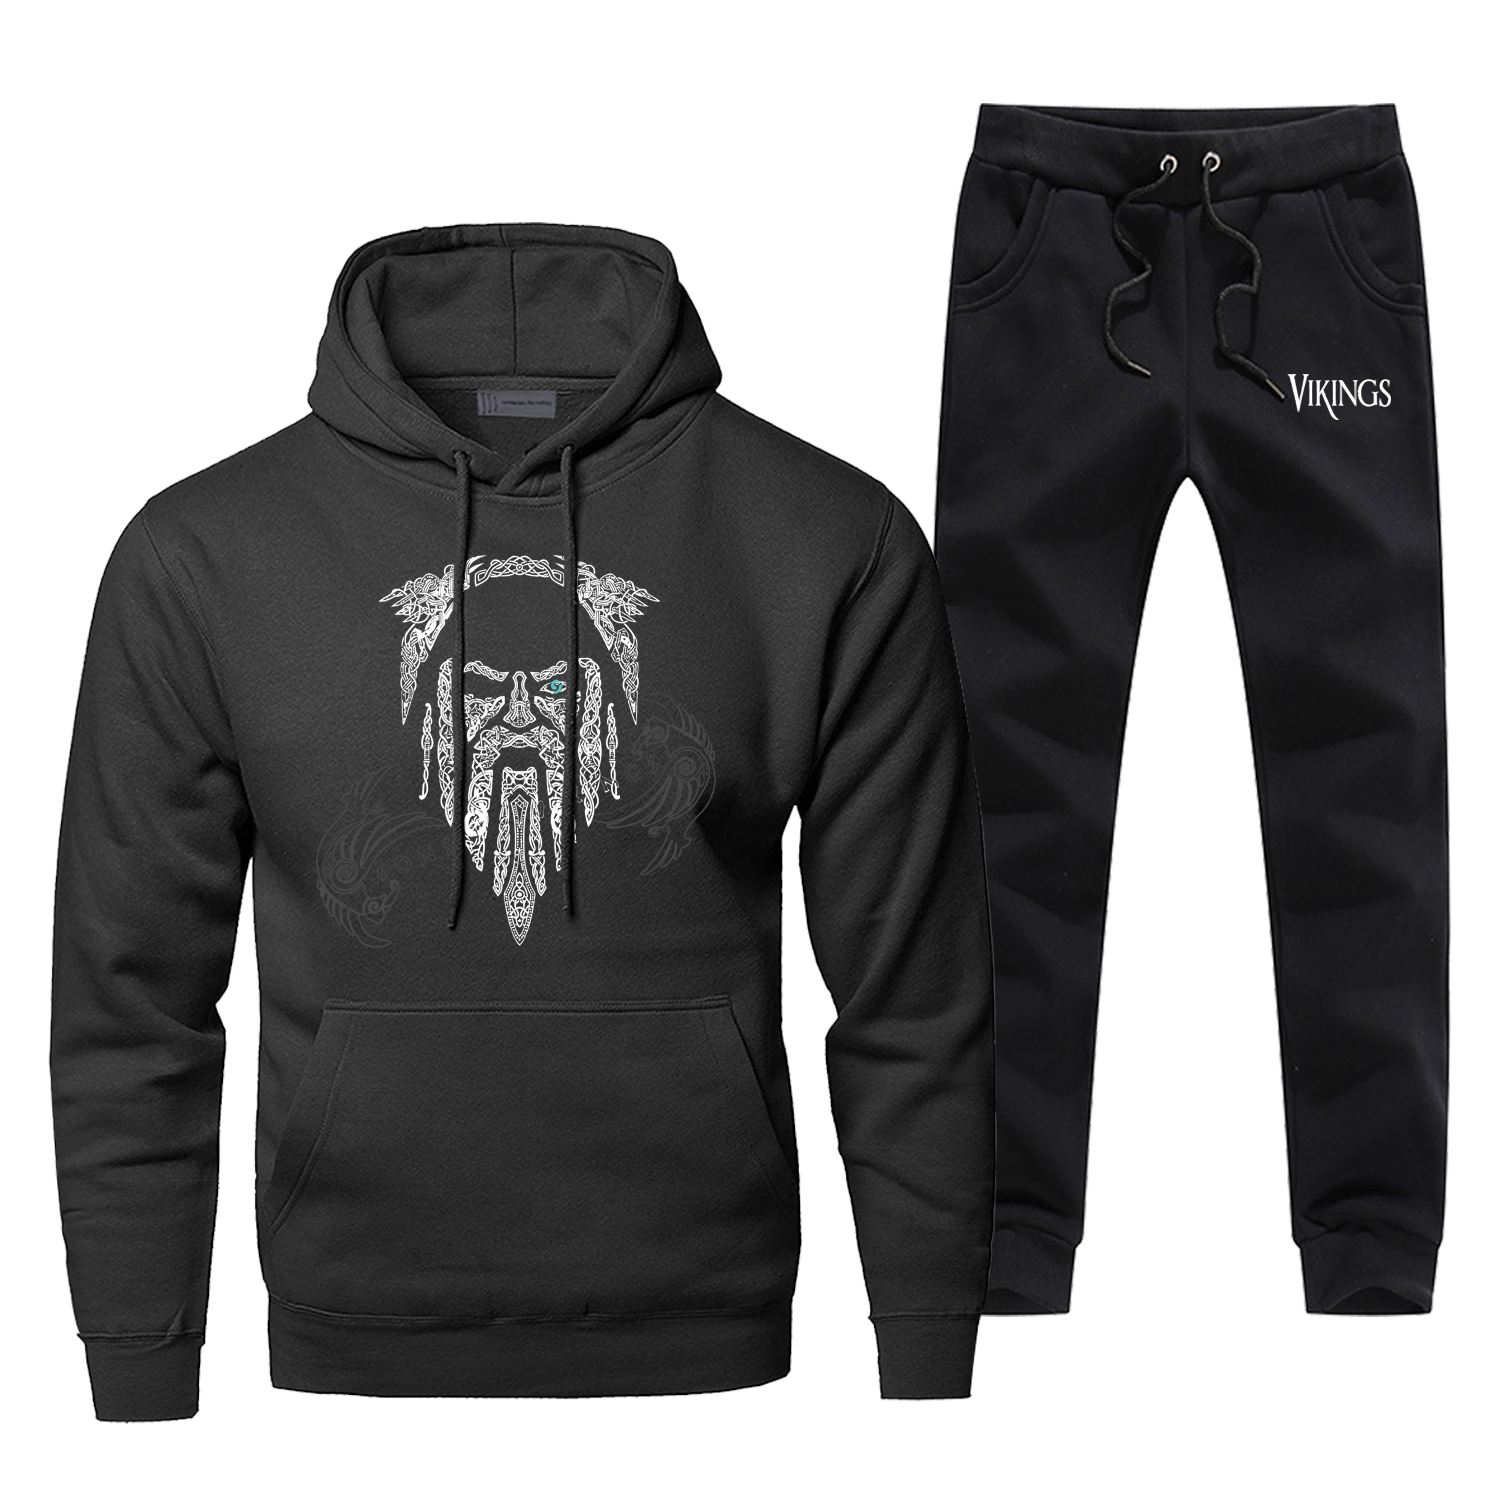 Odin Viking Mens Hoodies Sets Two Piece Pant Scandinavian Runes Athelstan Hoodie Sweatshirt Sweatpants Streetwear Sweatshirts